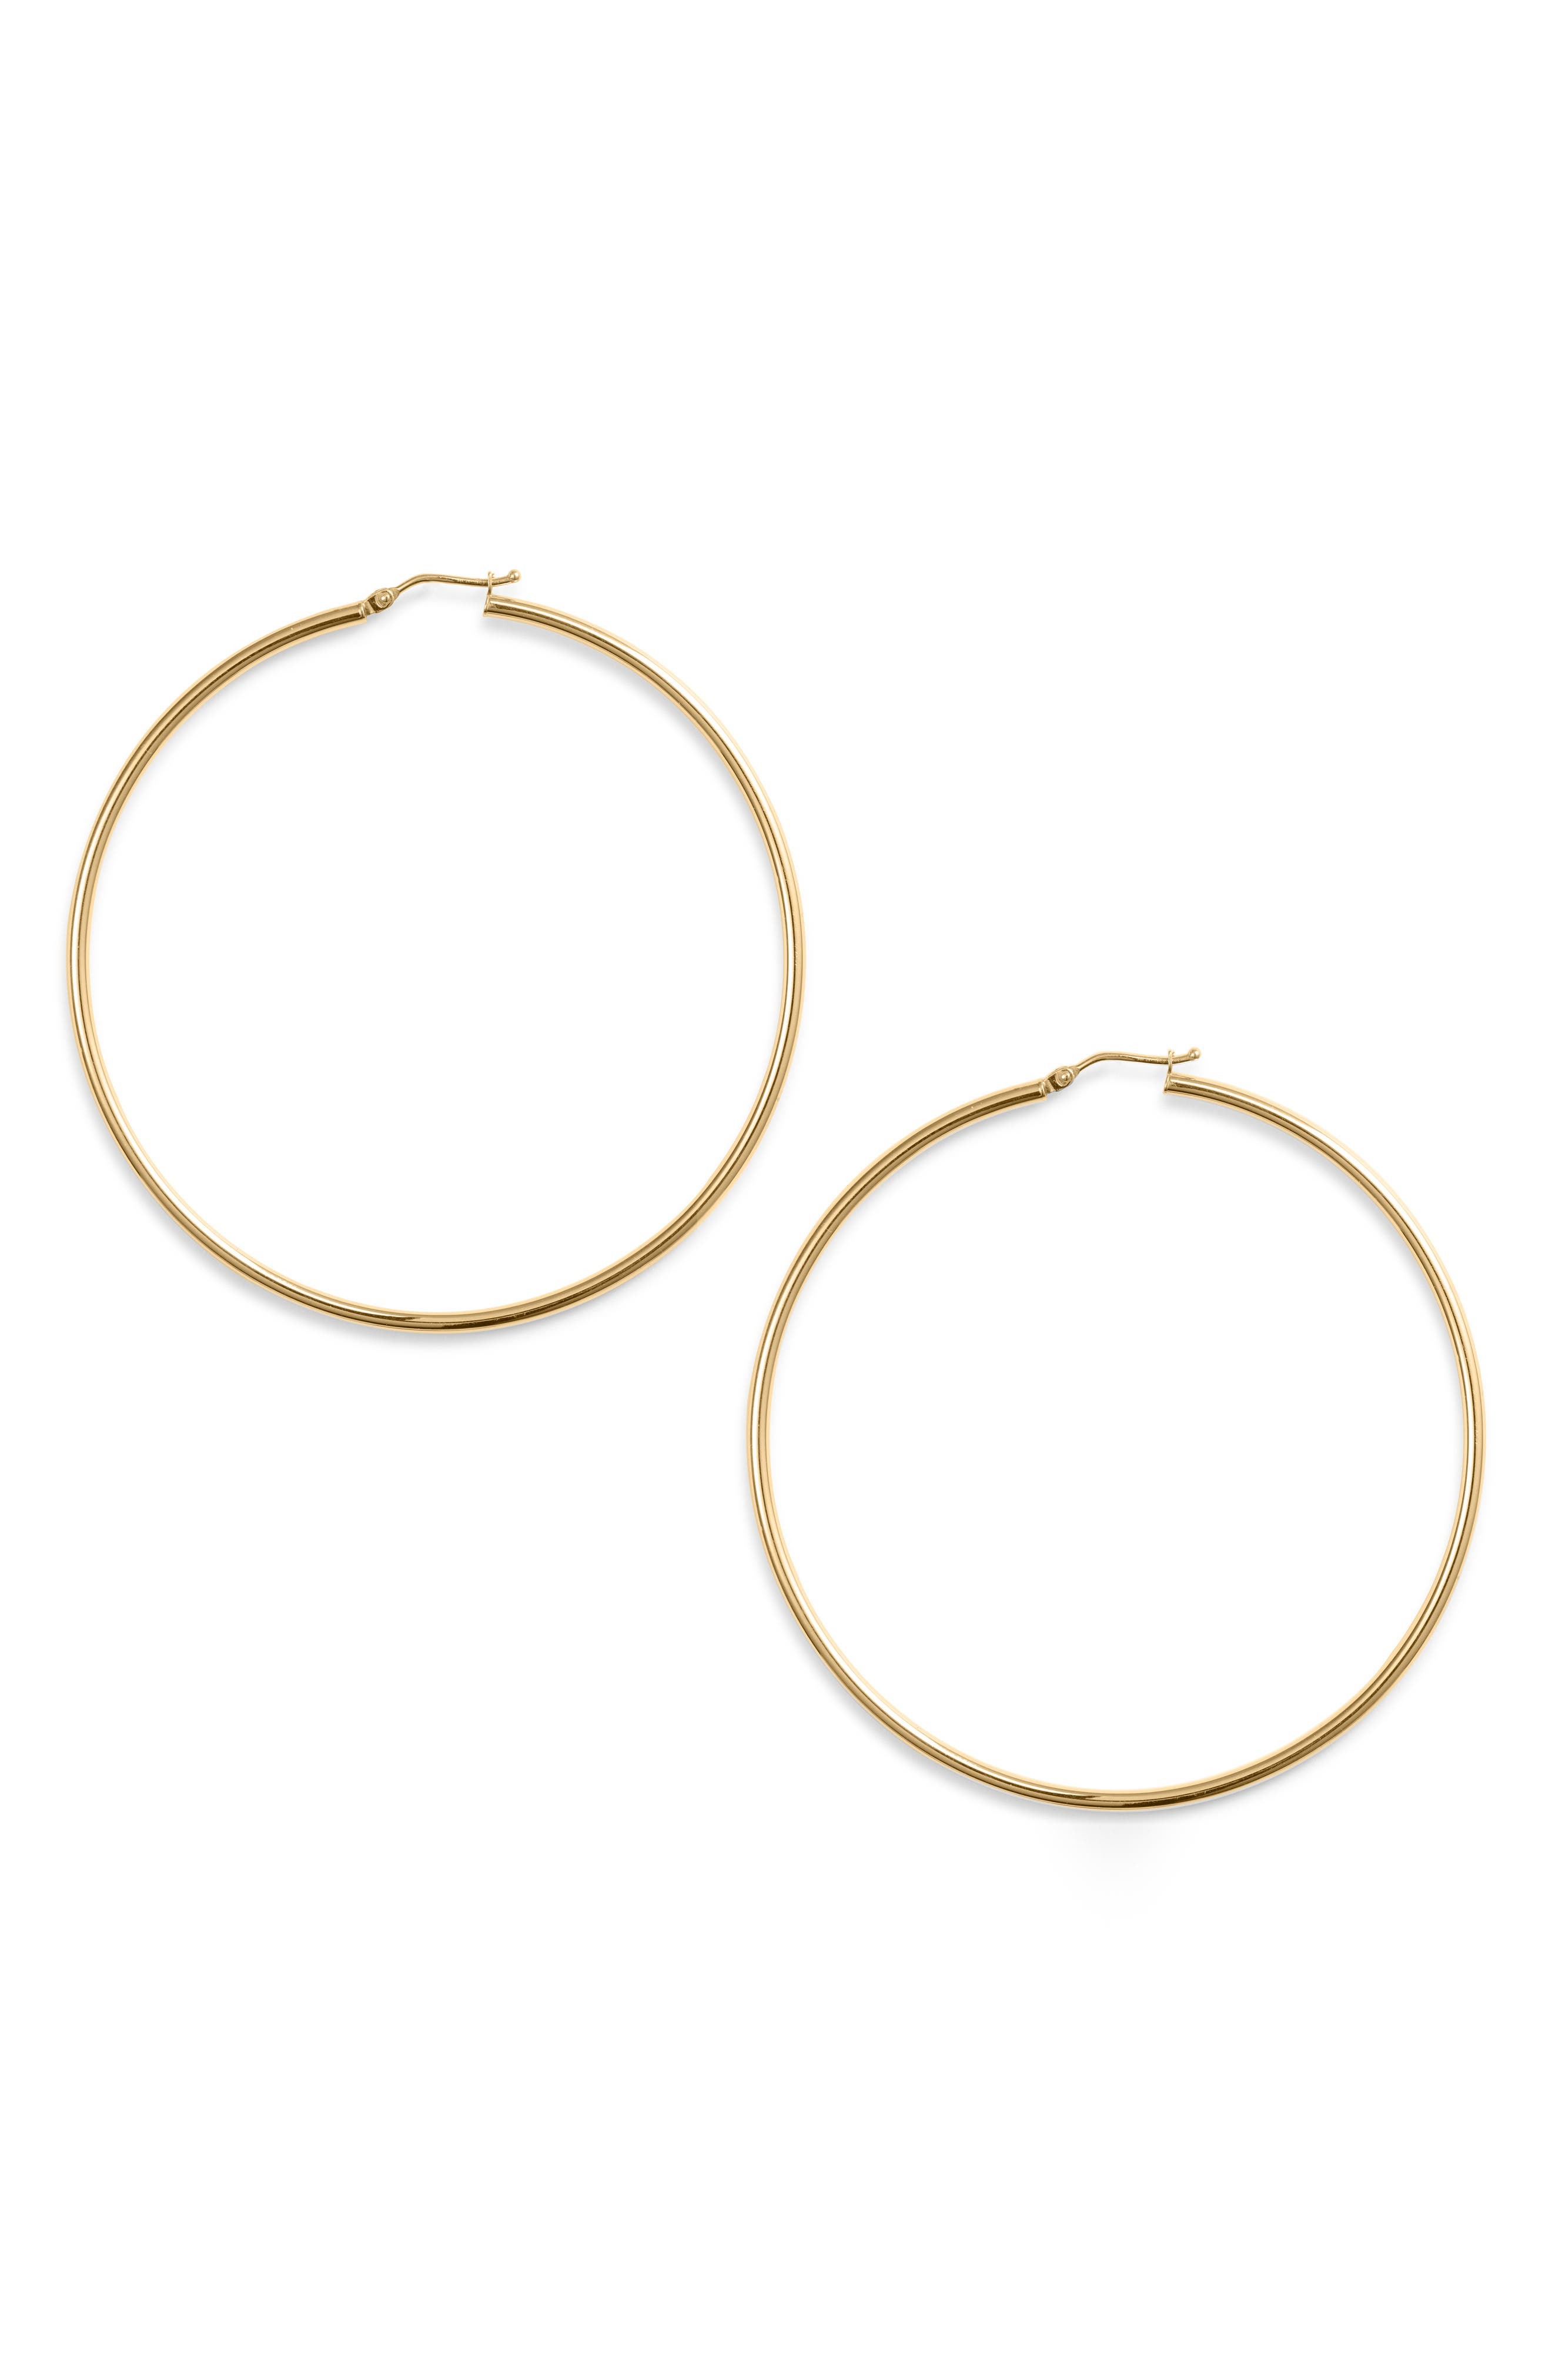 BONY LEVY Extra Large Gold Hoop Earrings, Main, color, YELLOW GOLD